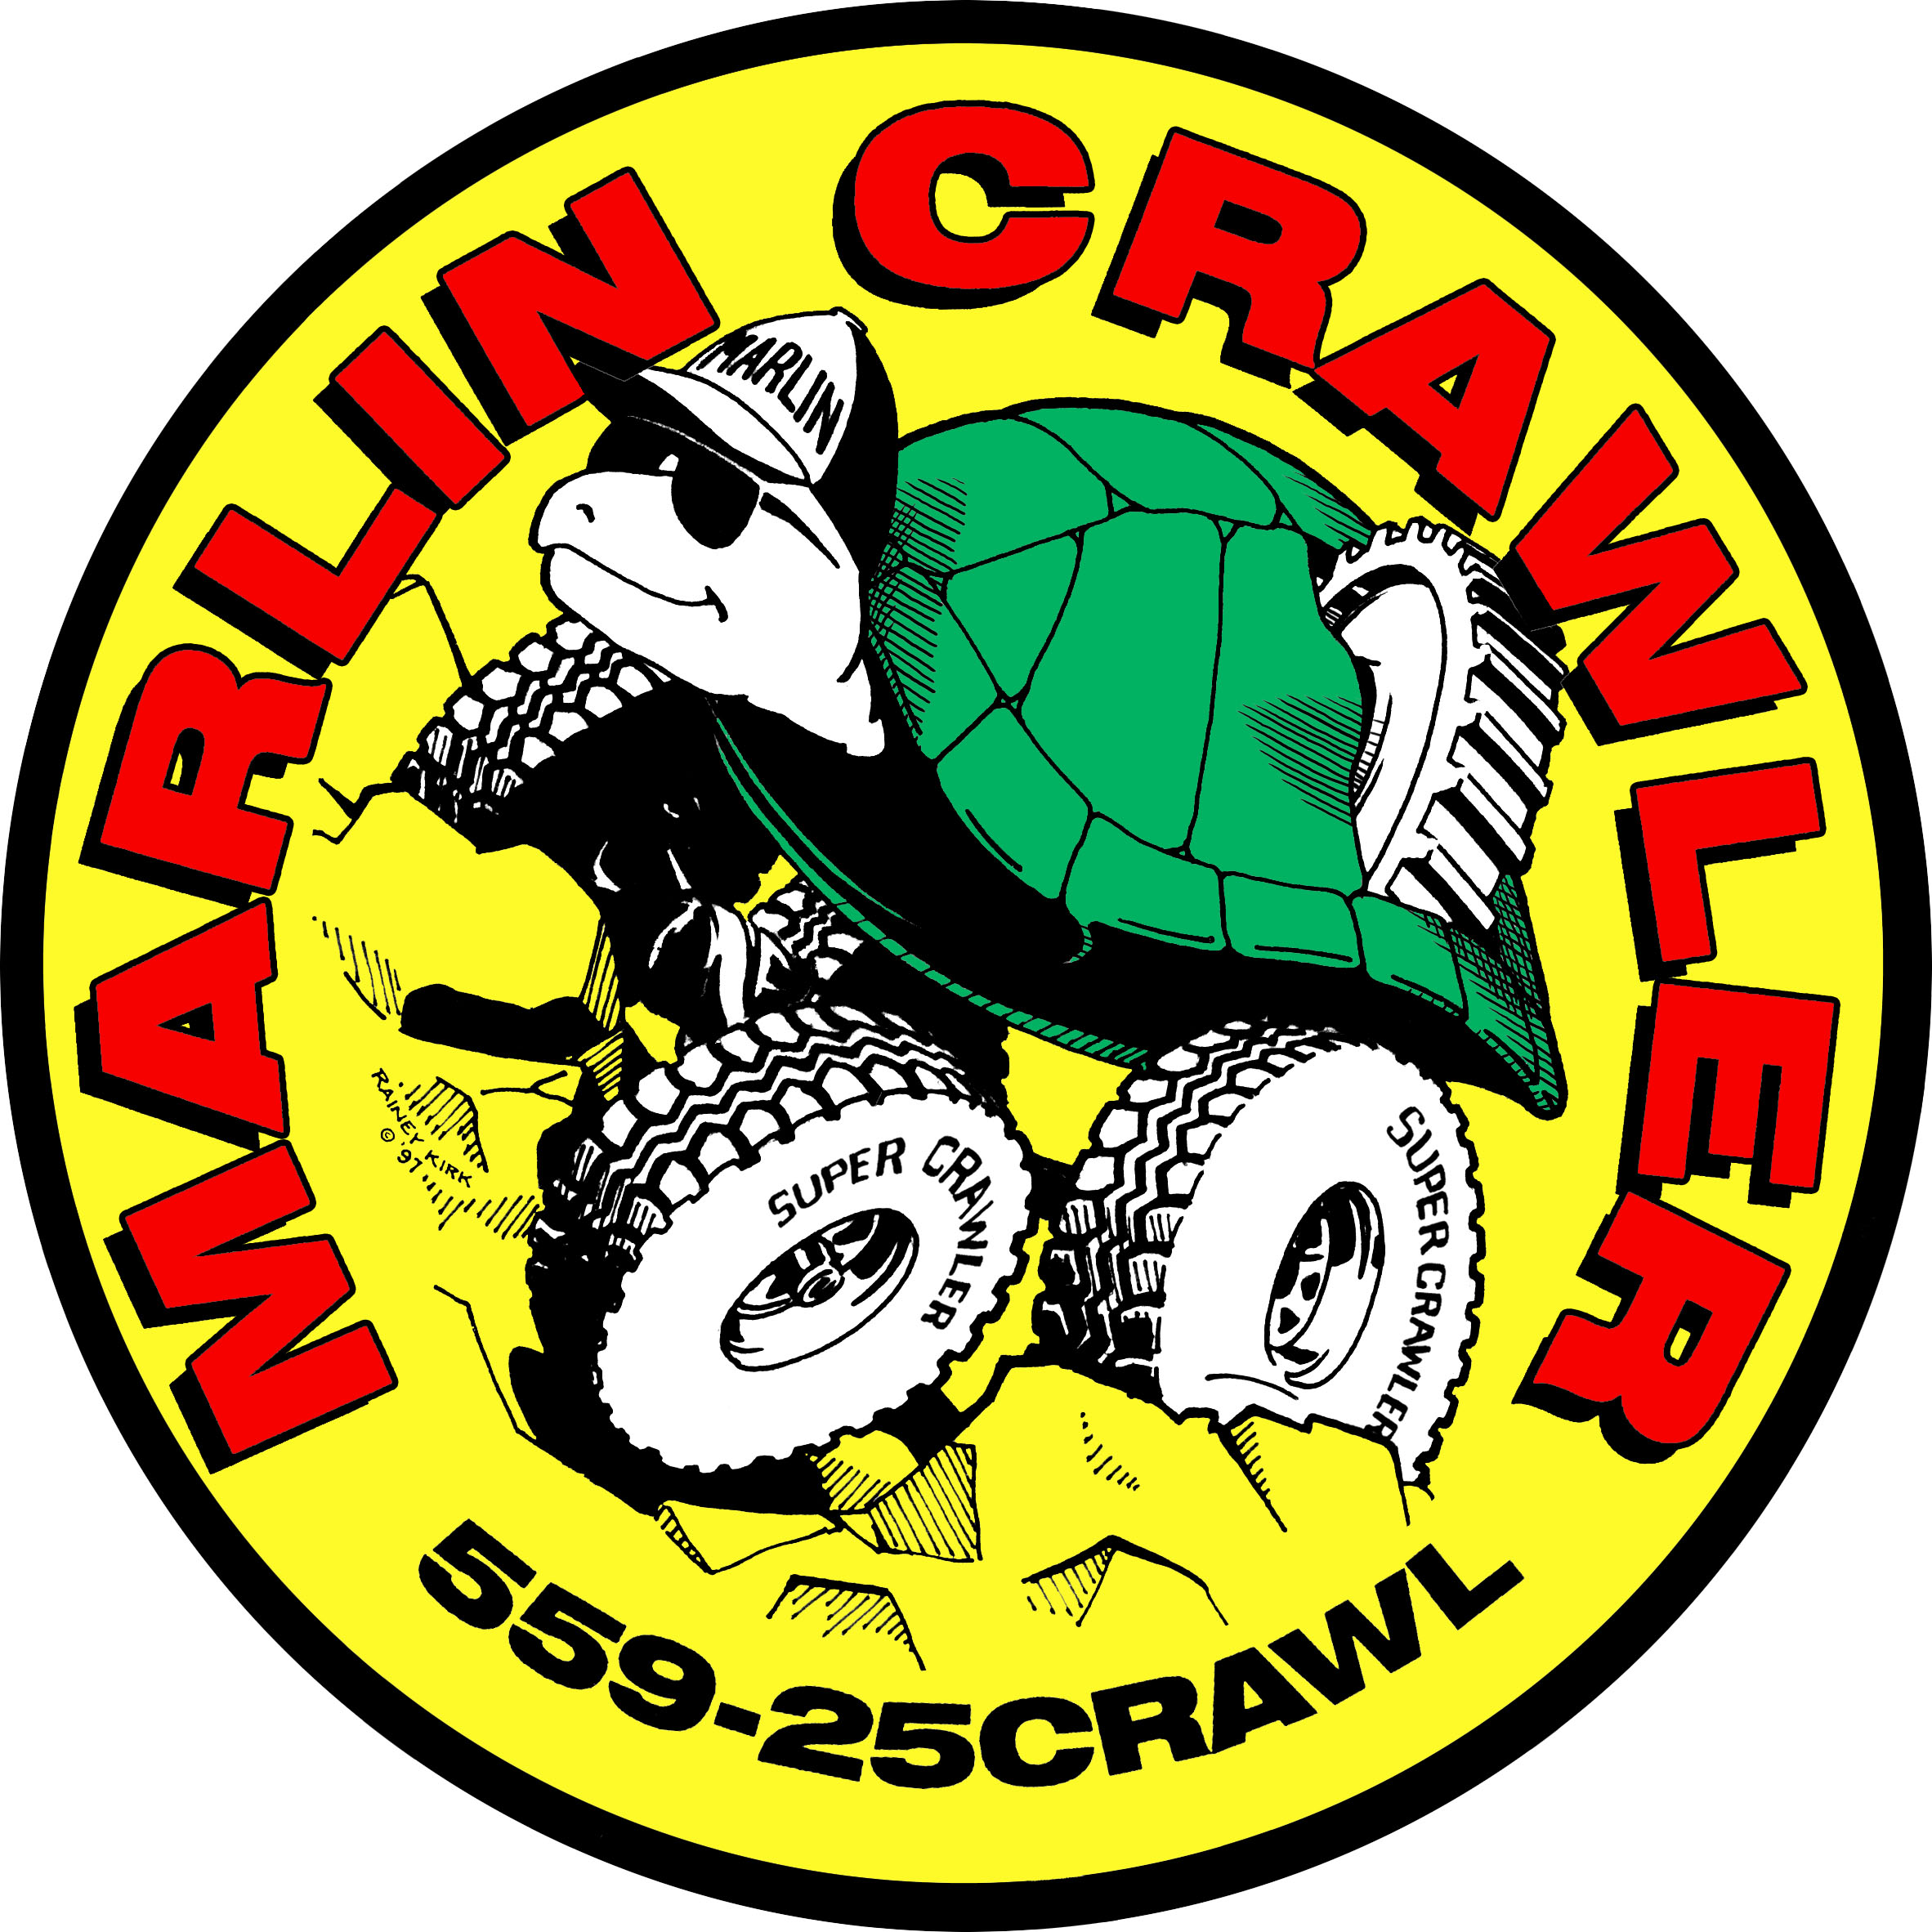 https://www.rc4wd.com/ProductImages/Logos/Marlin-Crawler-TurtleLogo.jpg